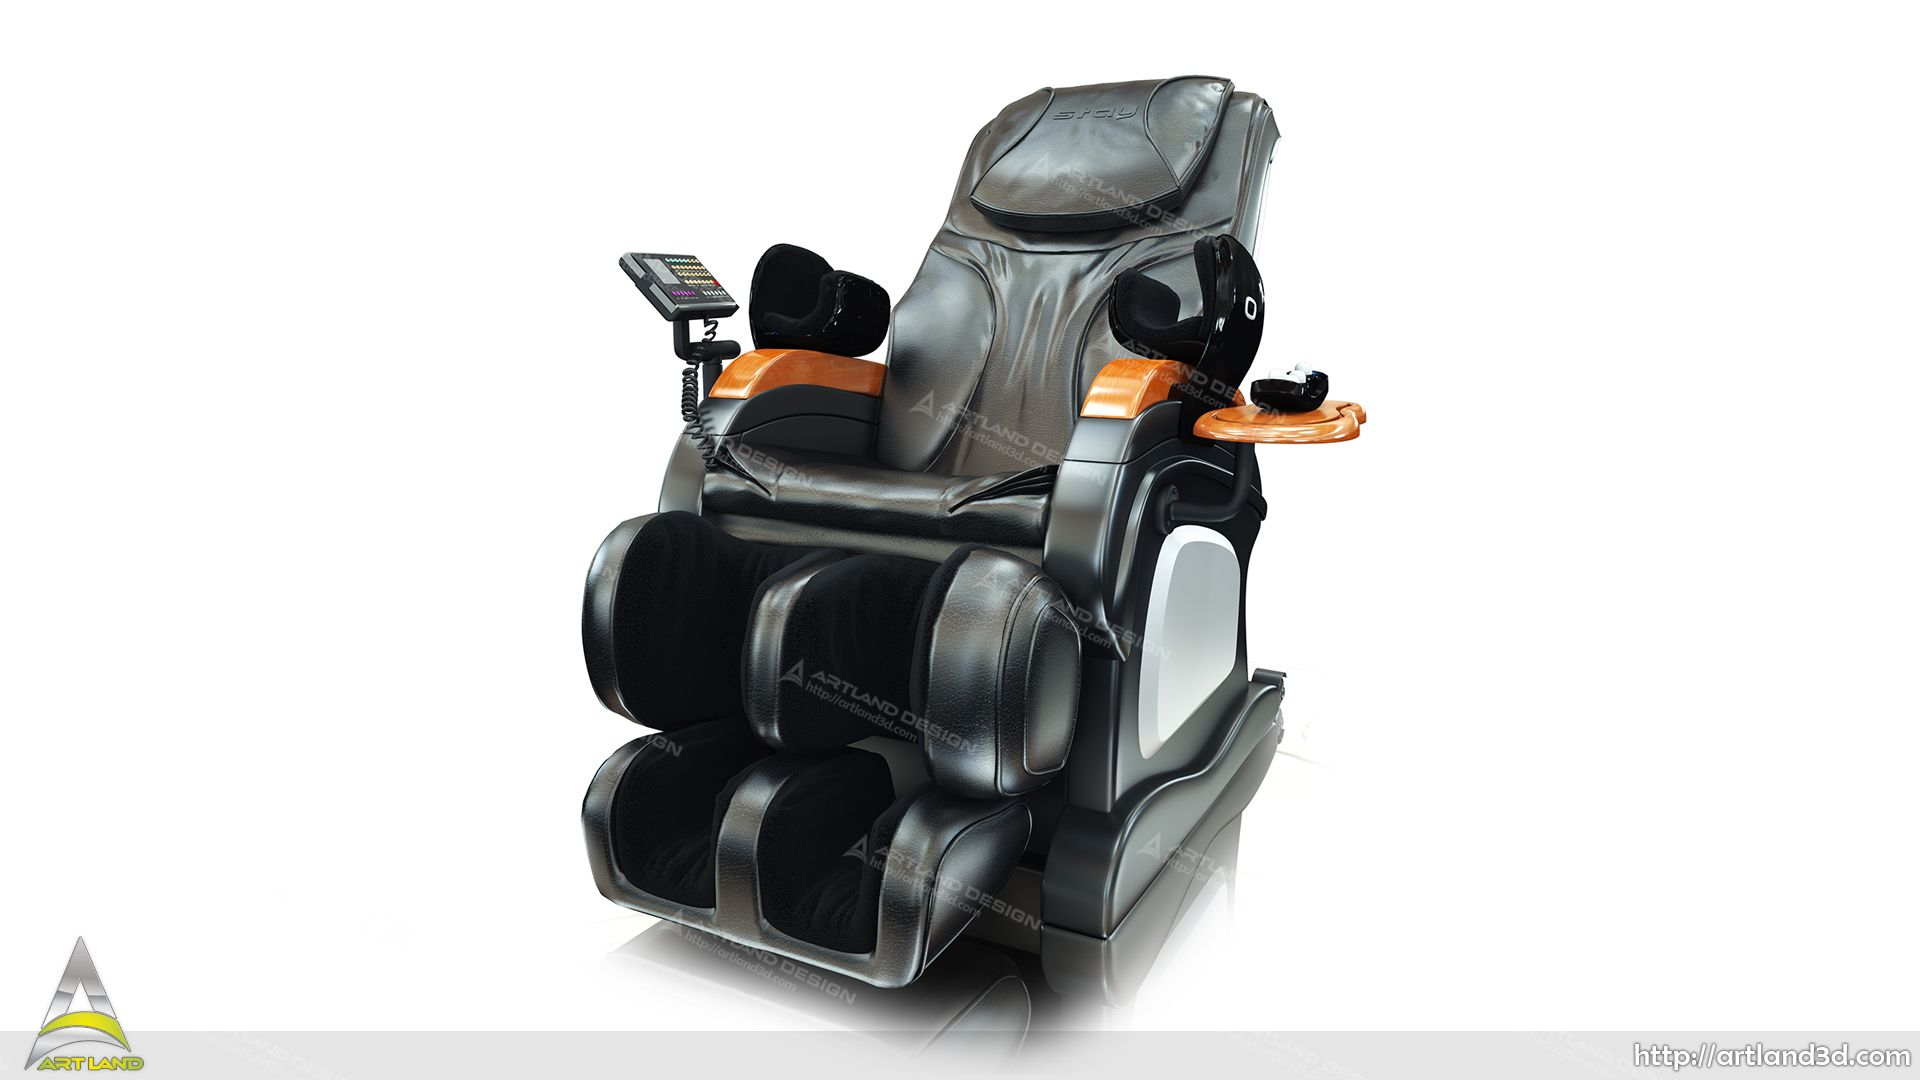 Massage Chair 3D Modeling and Post Processing, 3D